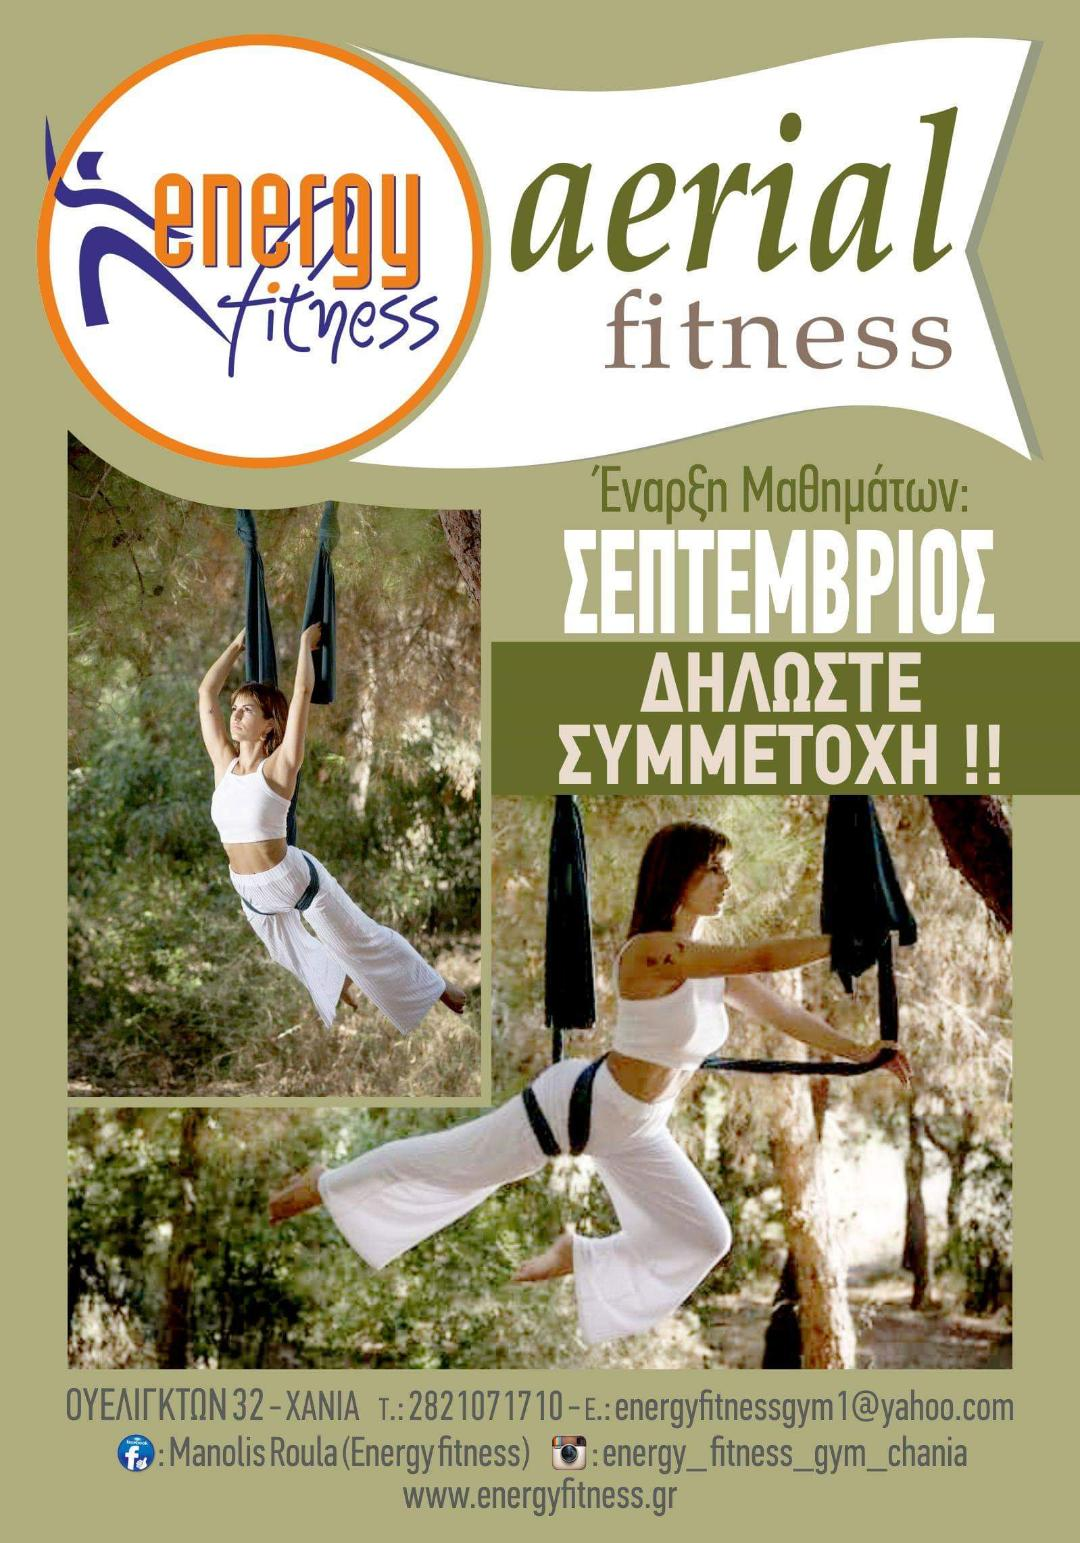 AERIAL FITNESS Energy Fitness Chania Gym